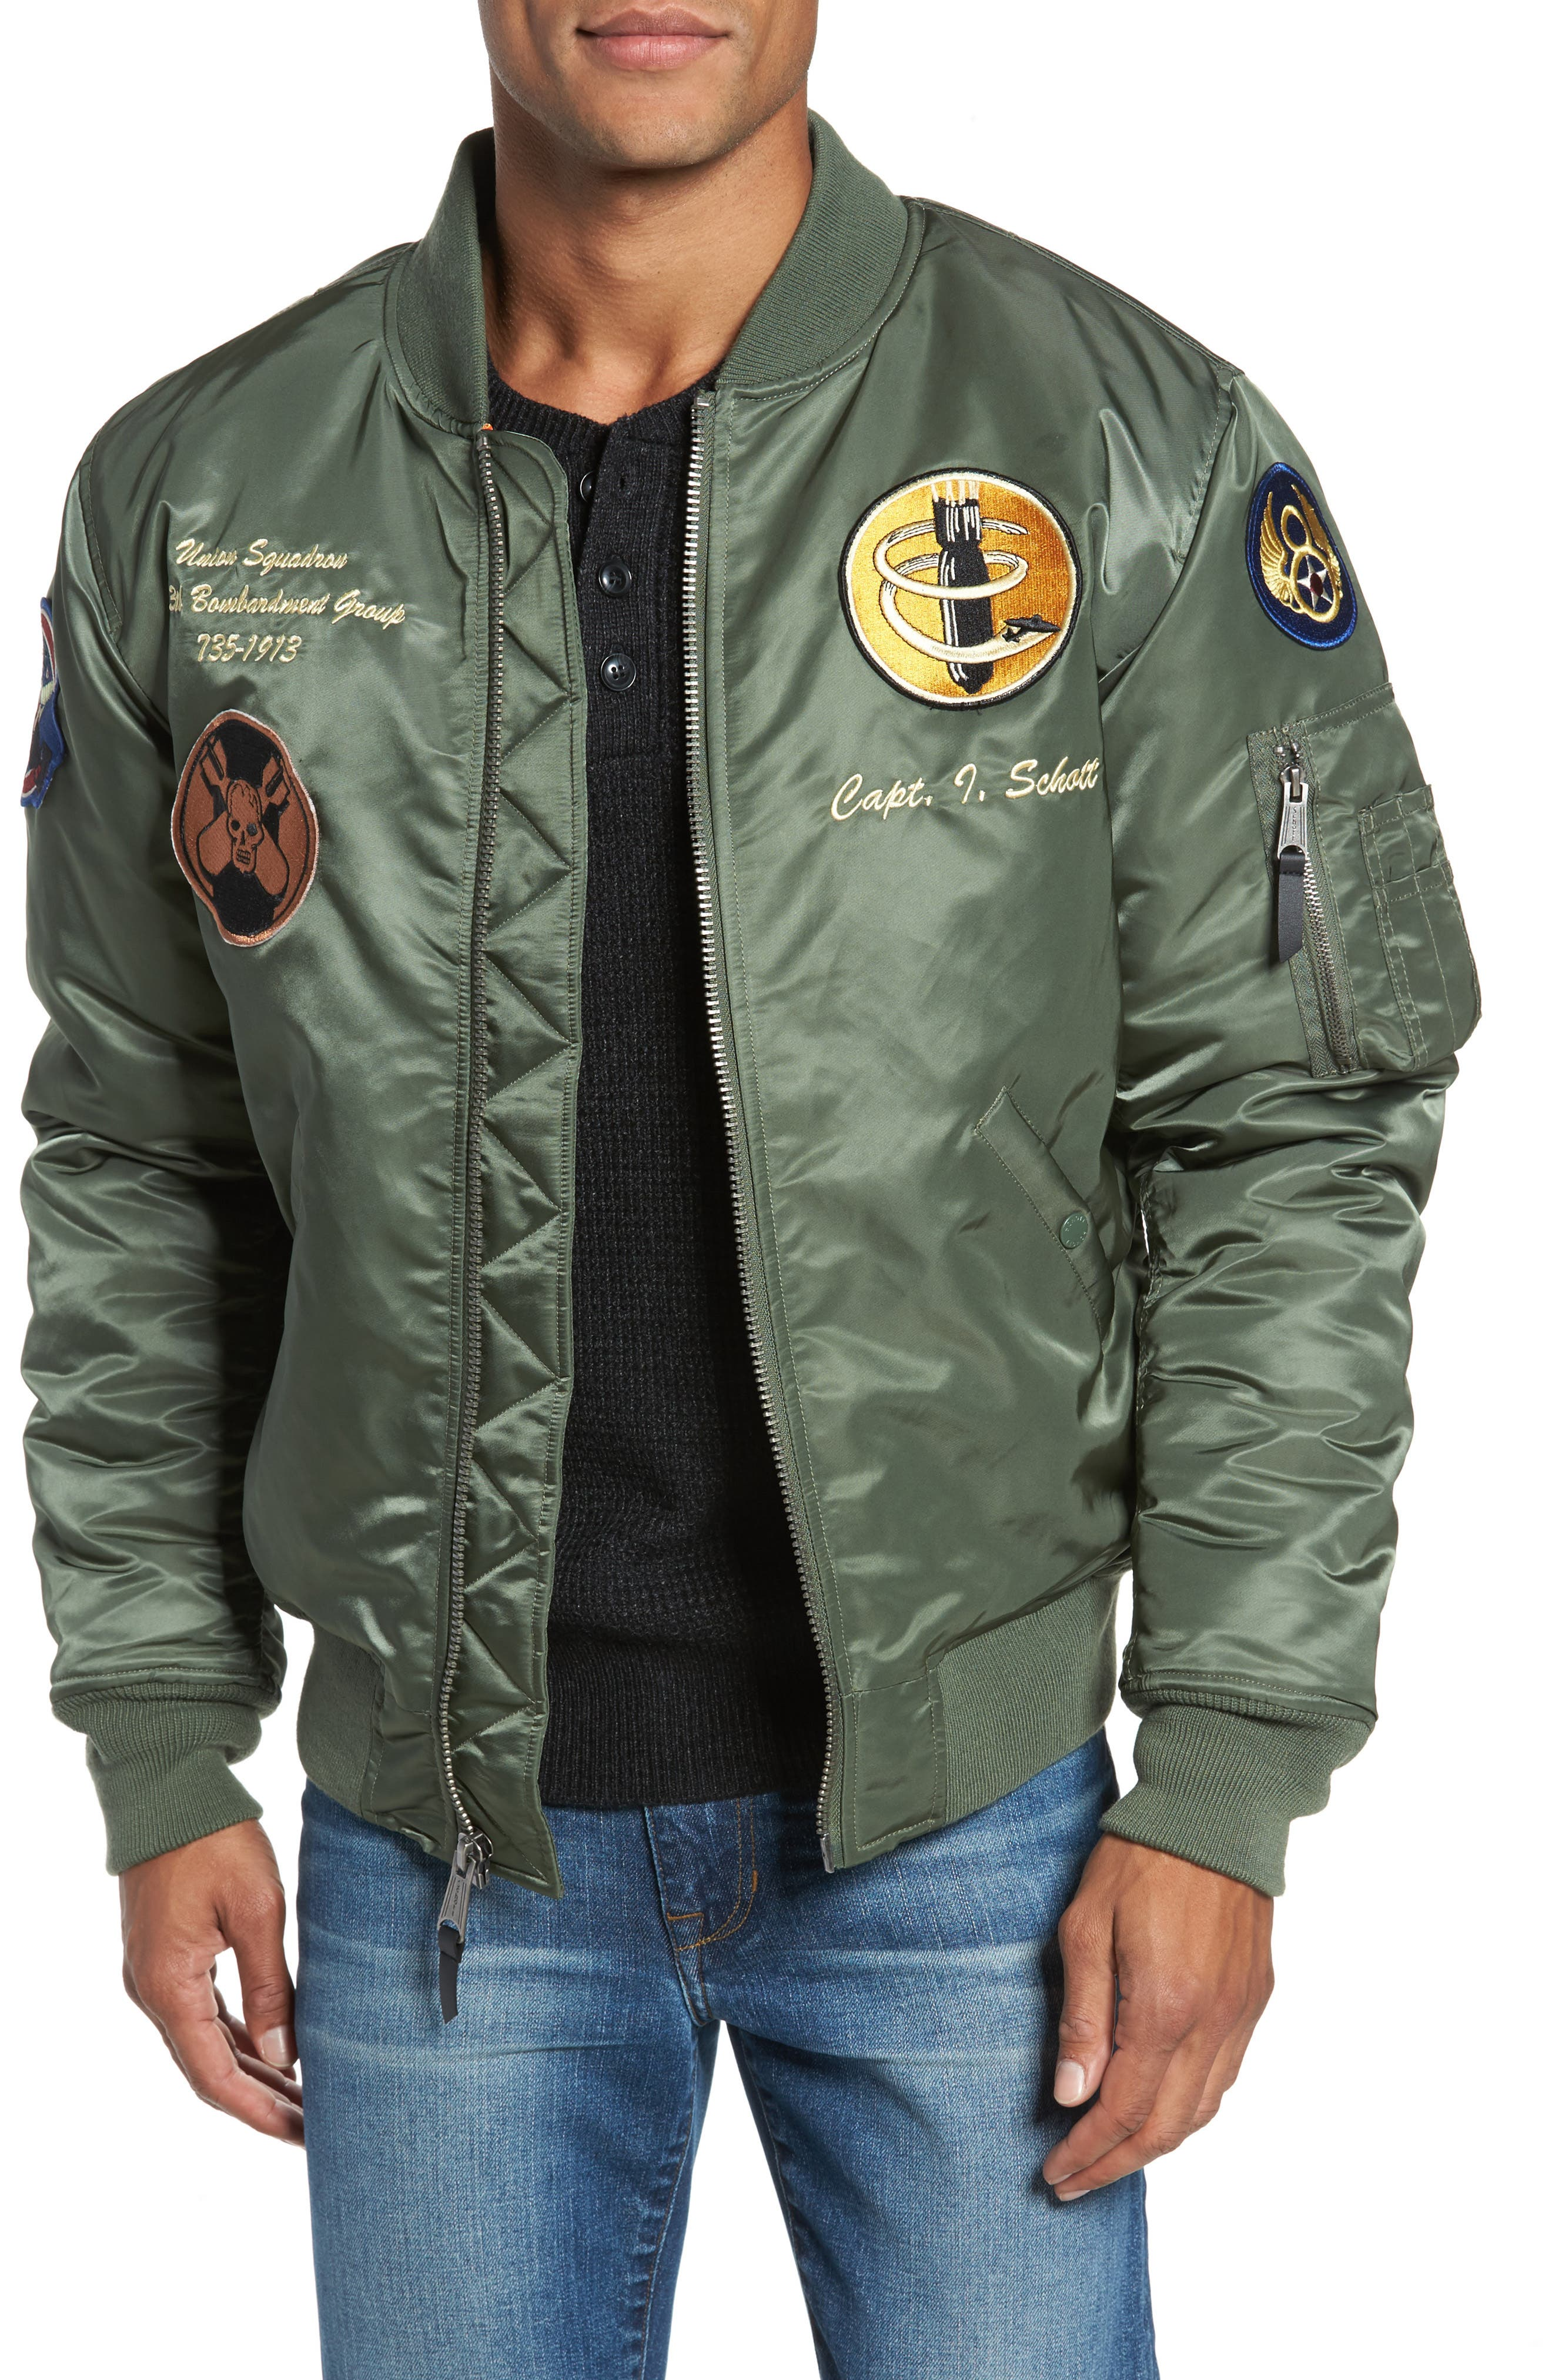 Highly Decorated Embroidered Flight Jacket,                         Main,                         color, Sage